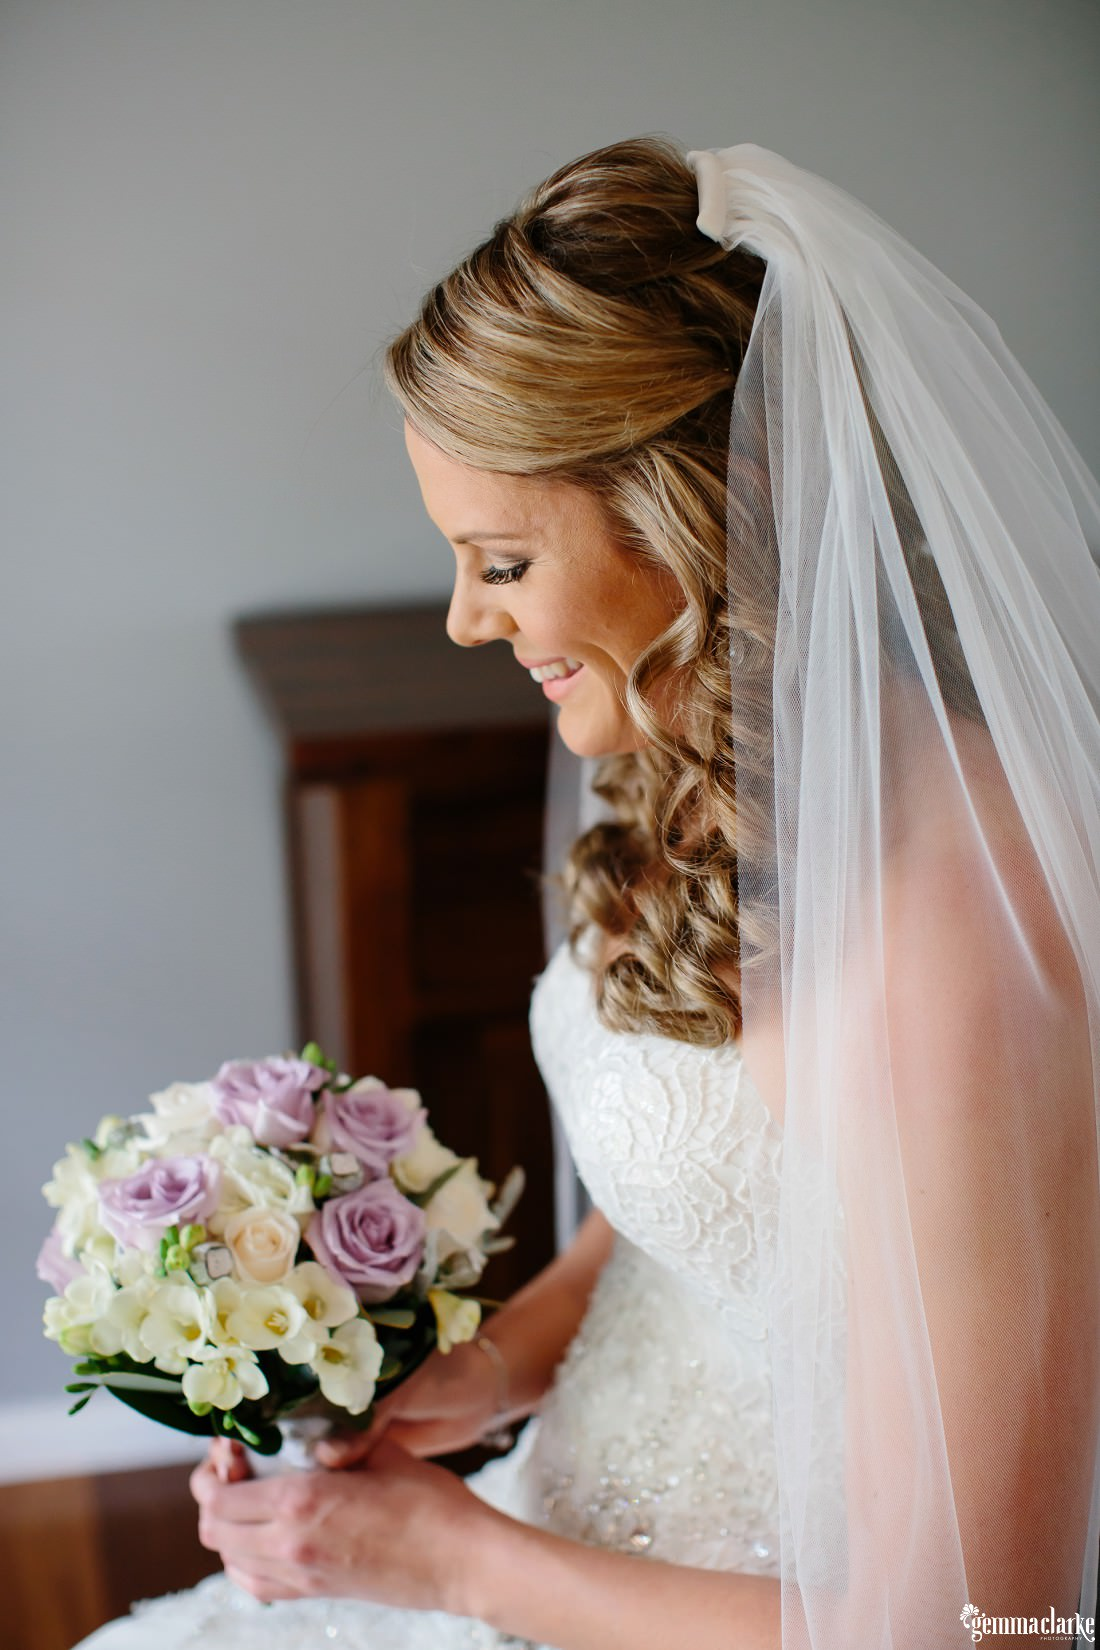 A bride smiling and looking at her floral bouquet